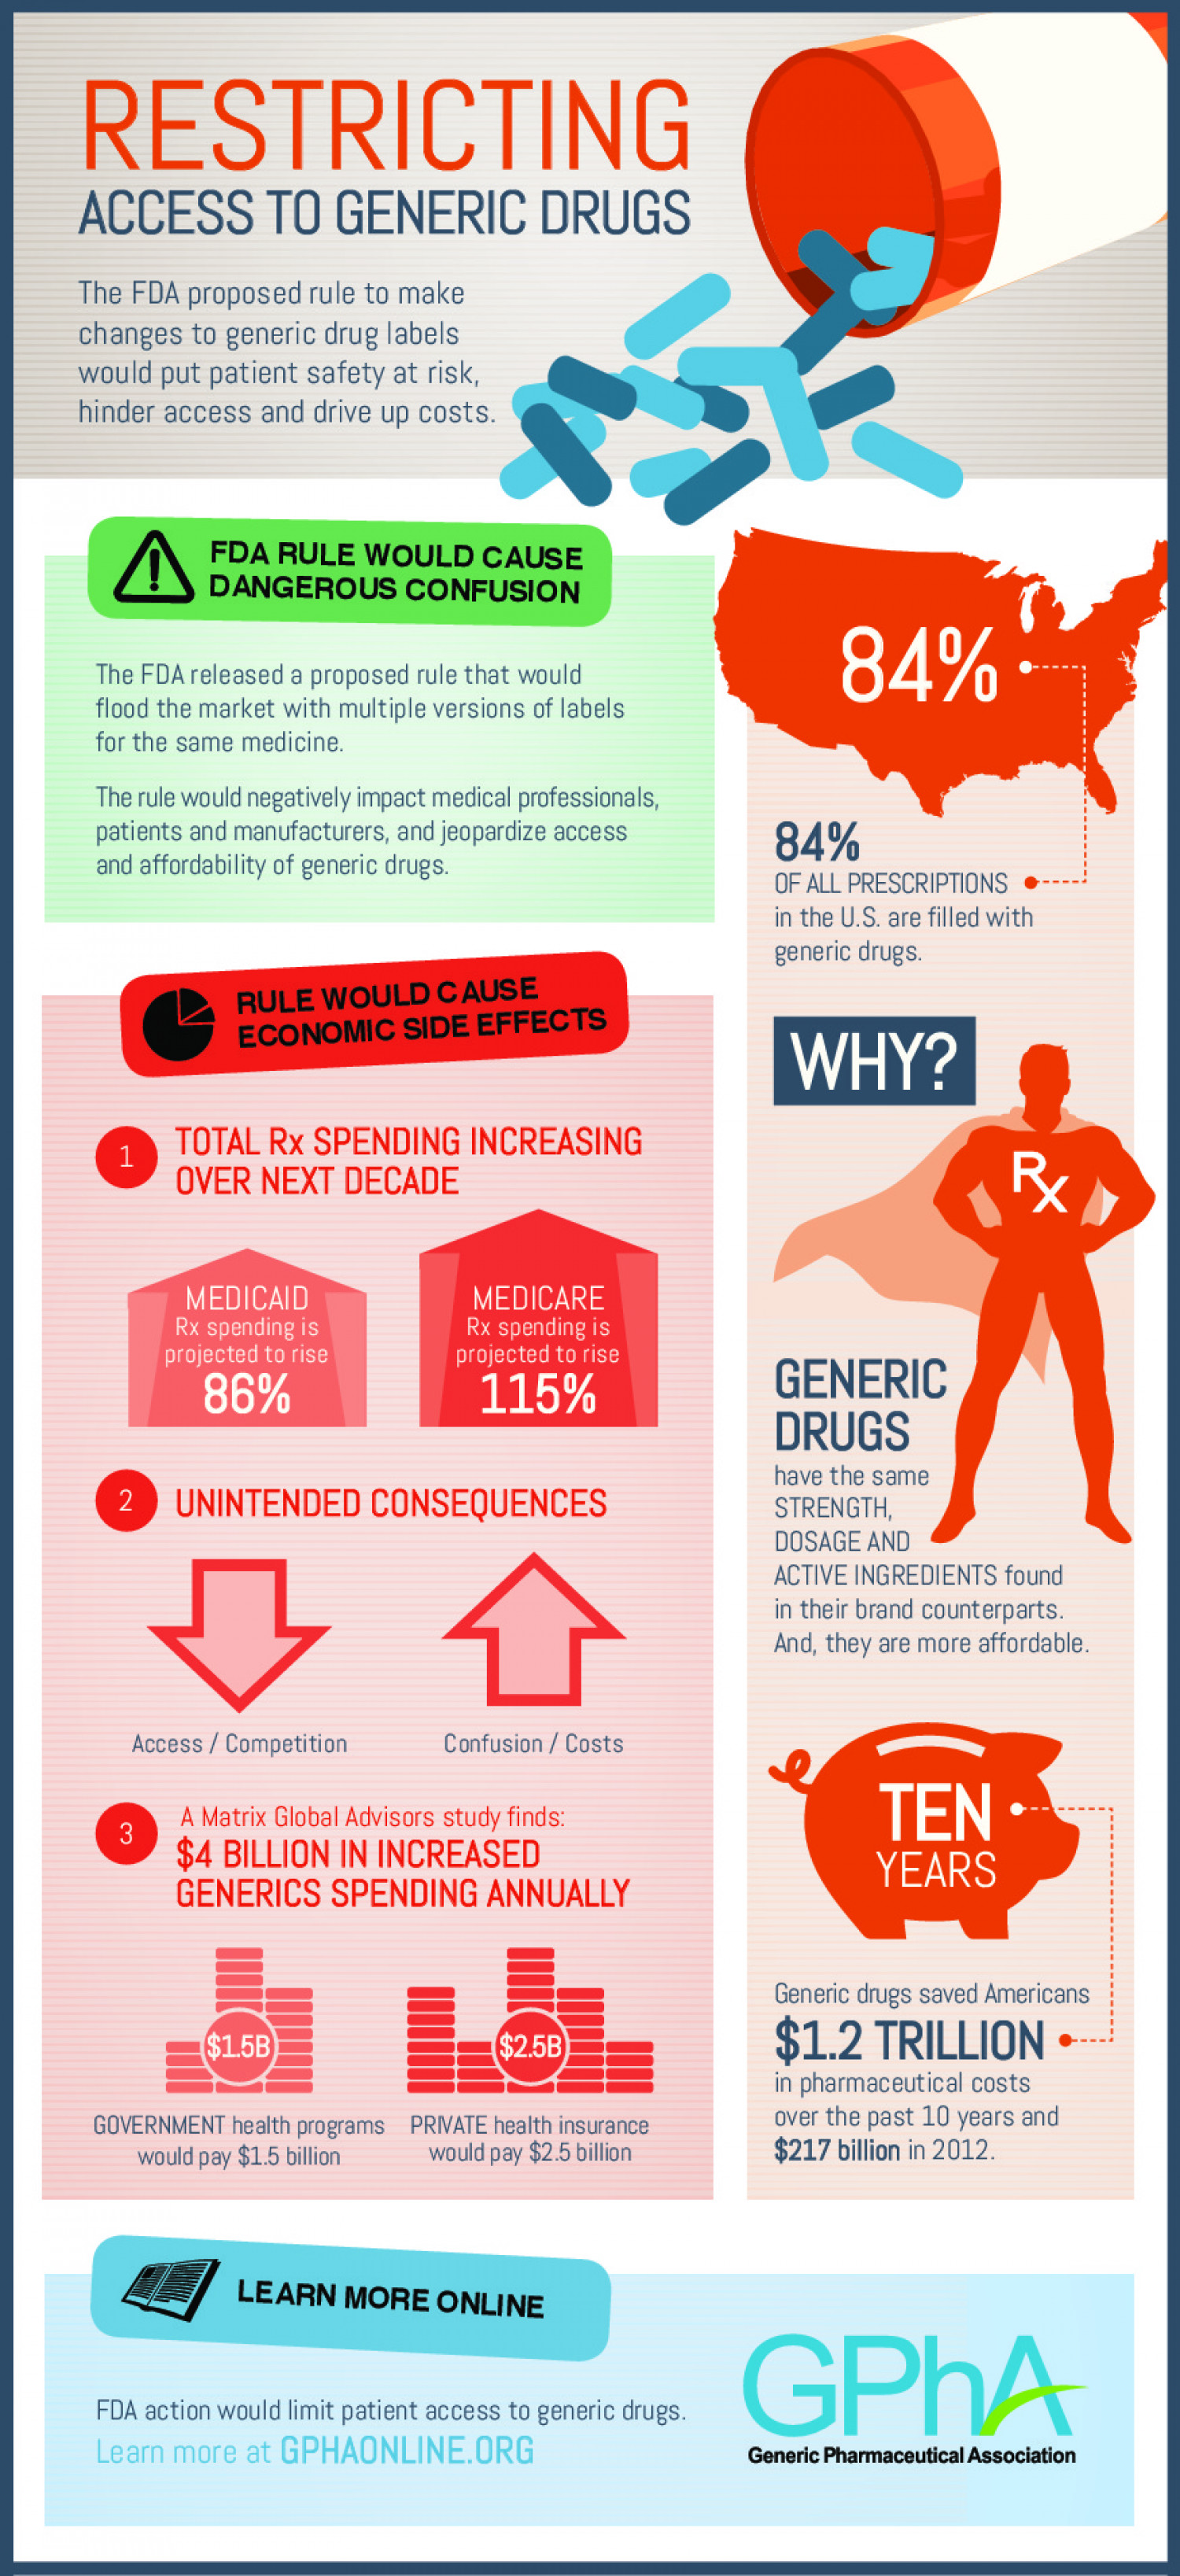 Restricting Access to Generic Drugs Infographic